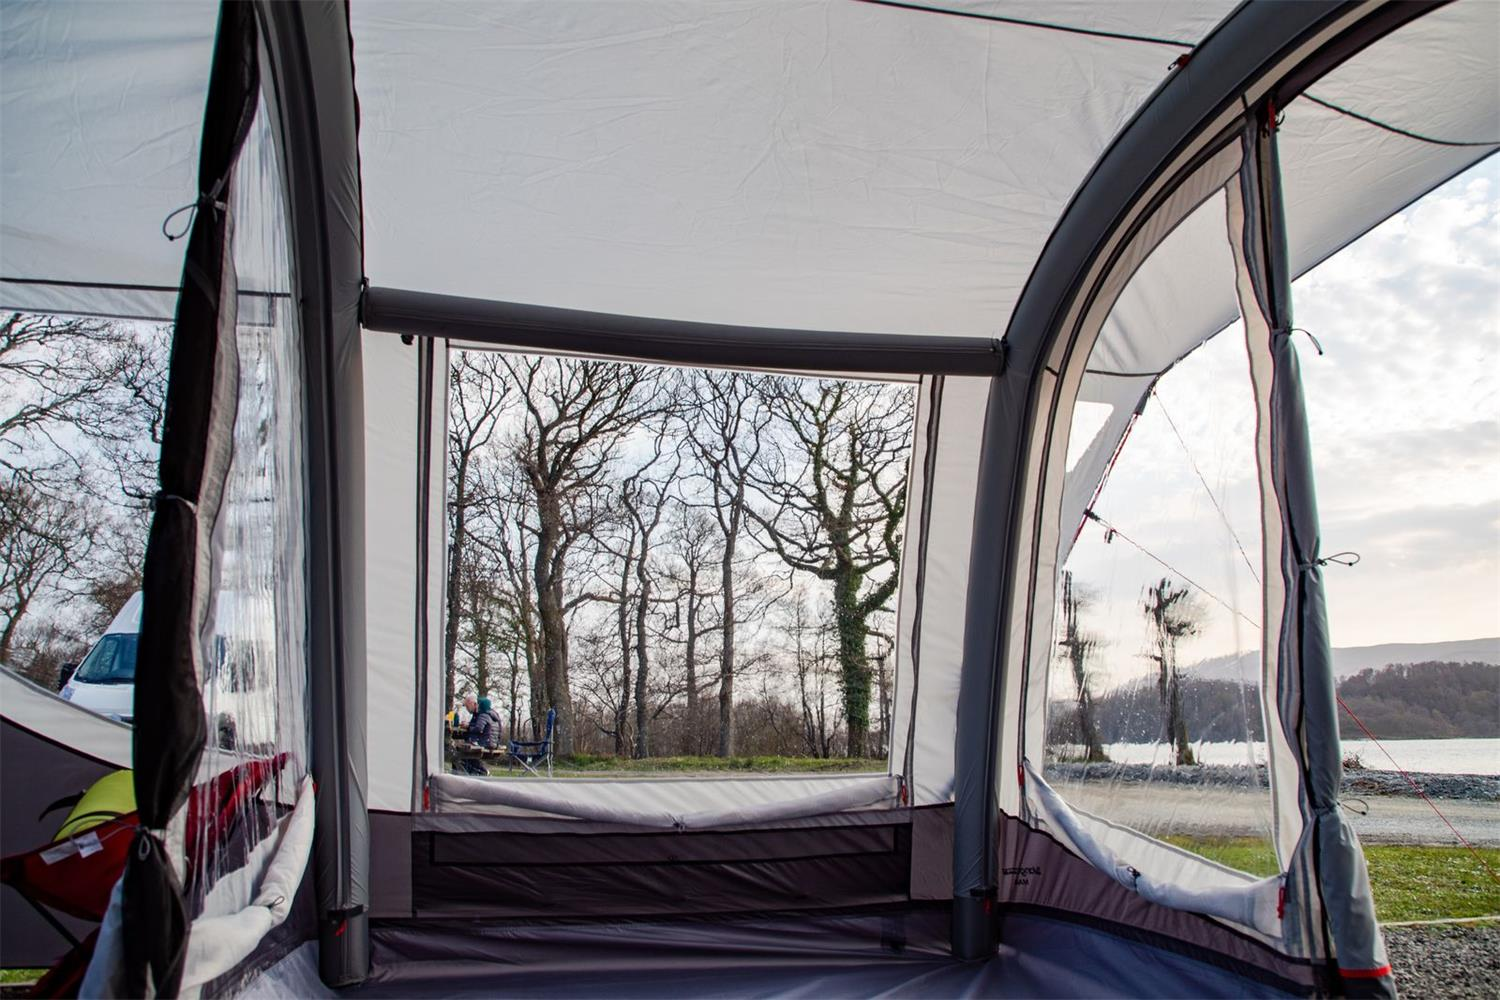 The robust structure of the Vango Magra allows you to venture away in all weathers and gives you a very light and airy space.